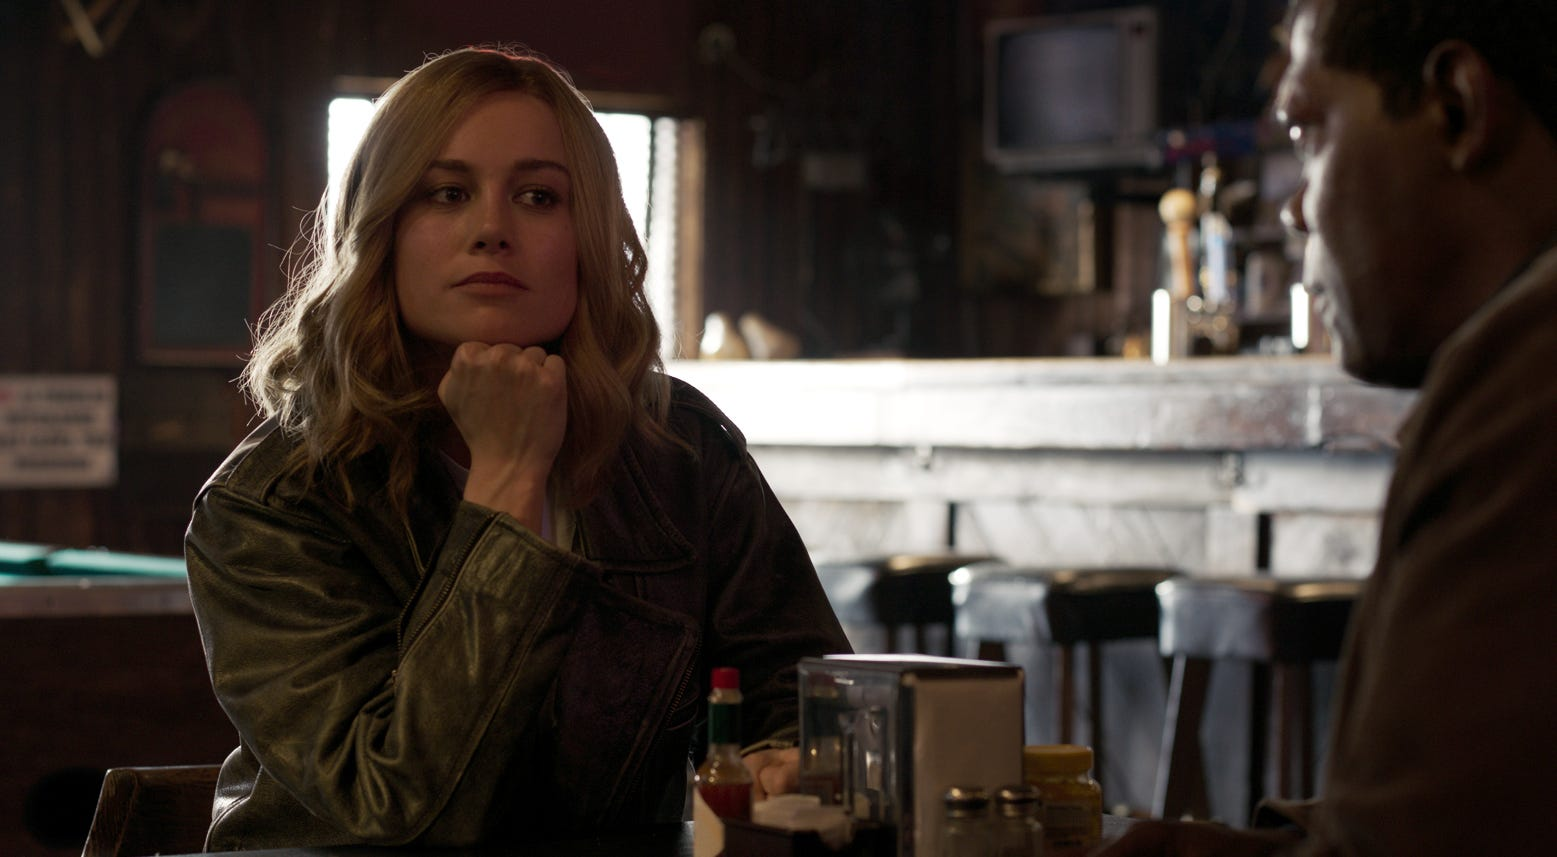 captain marvel' spoilers: how end credits tie to 'avengers: endgame'